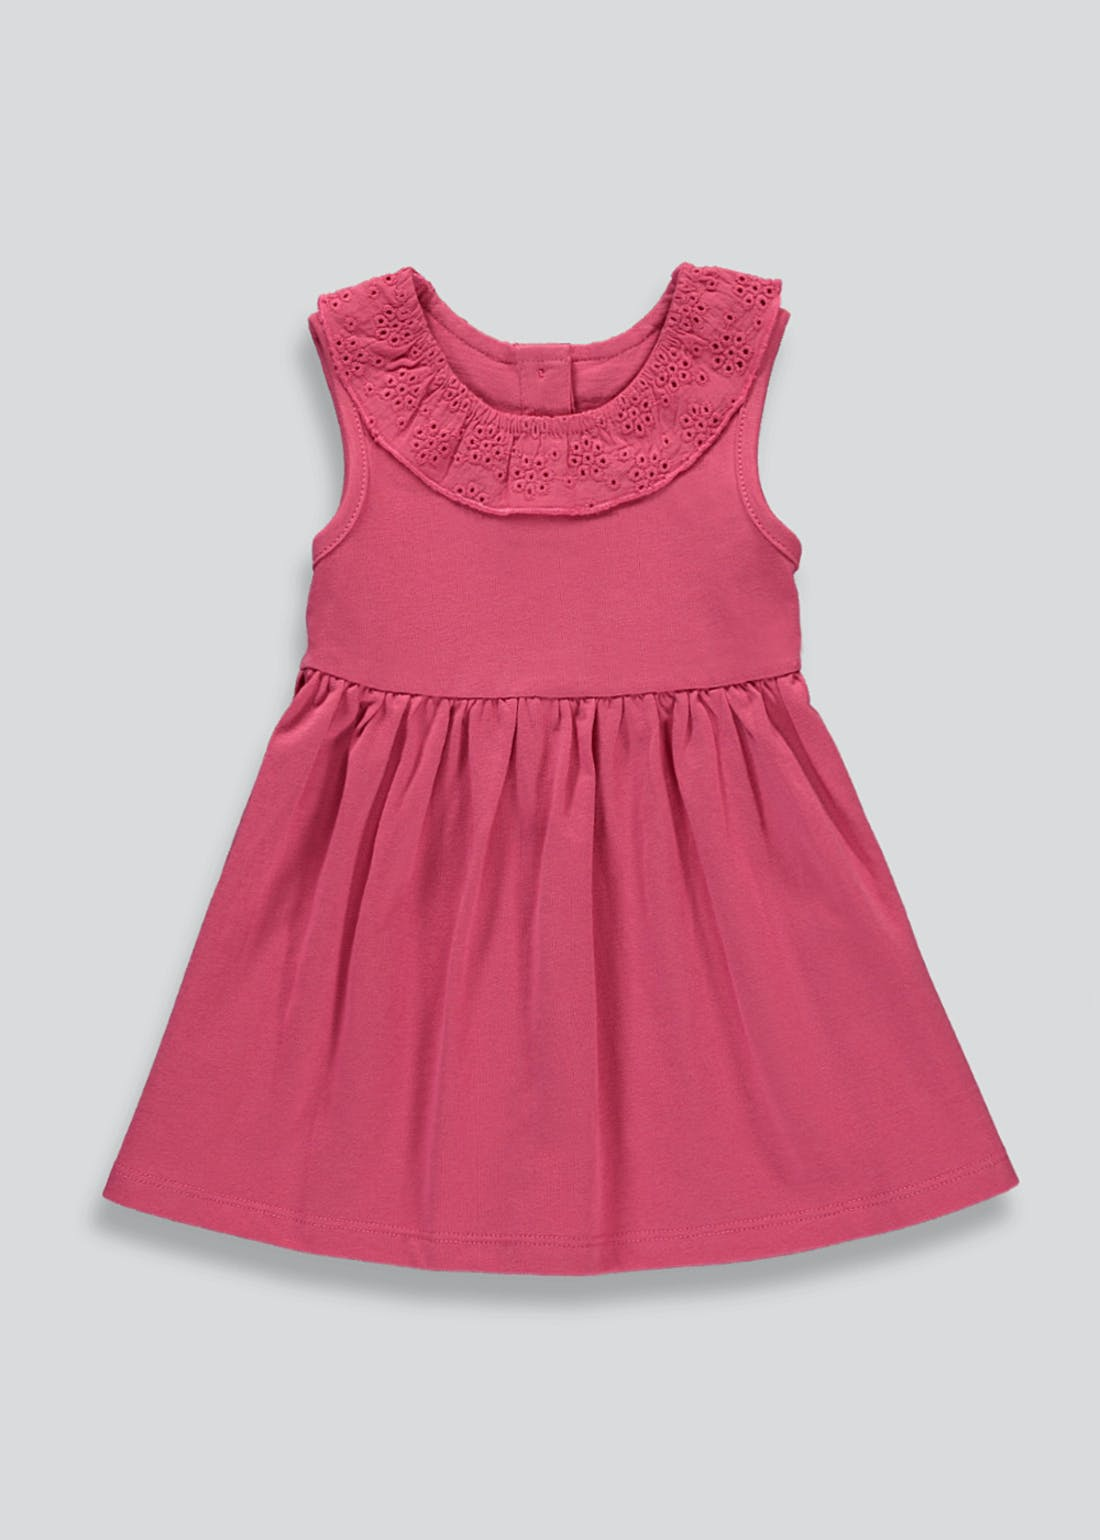 Girls Pink Sleeveless Dress (Tiny Baby-23mths)